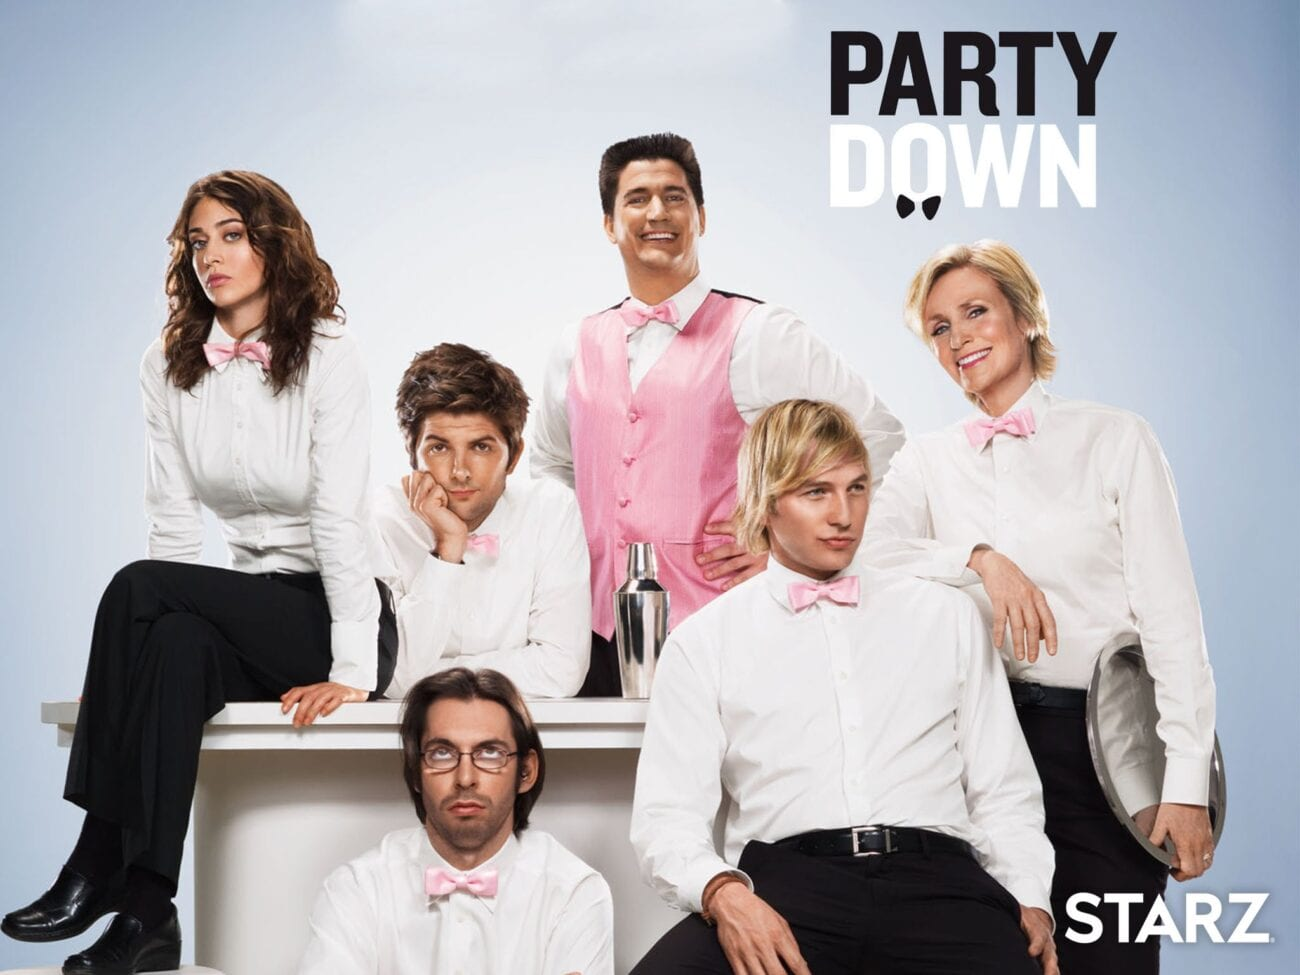 """'Party Down' is back! The revival is officially a """"Ron Donald Do"""" at Starz and the original cast and producers are all coming back. Get your bow tie ready!"""